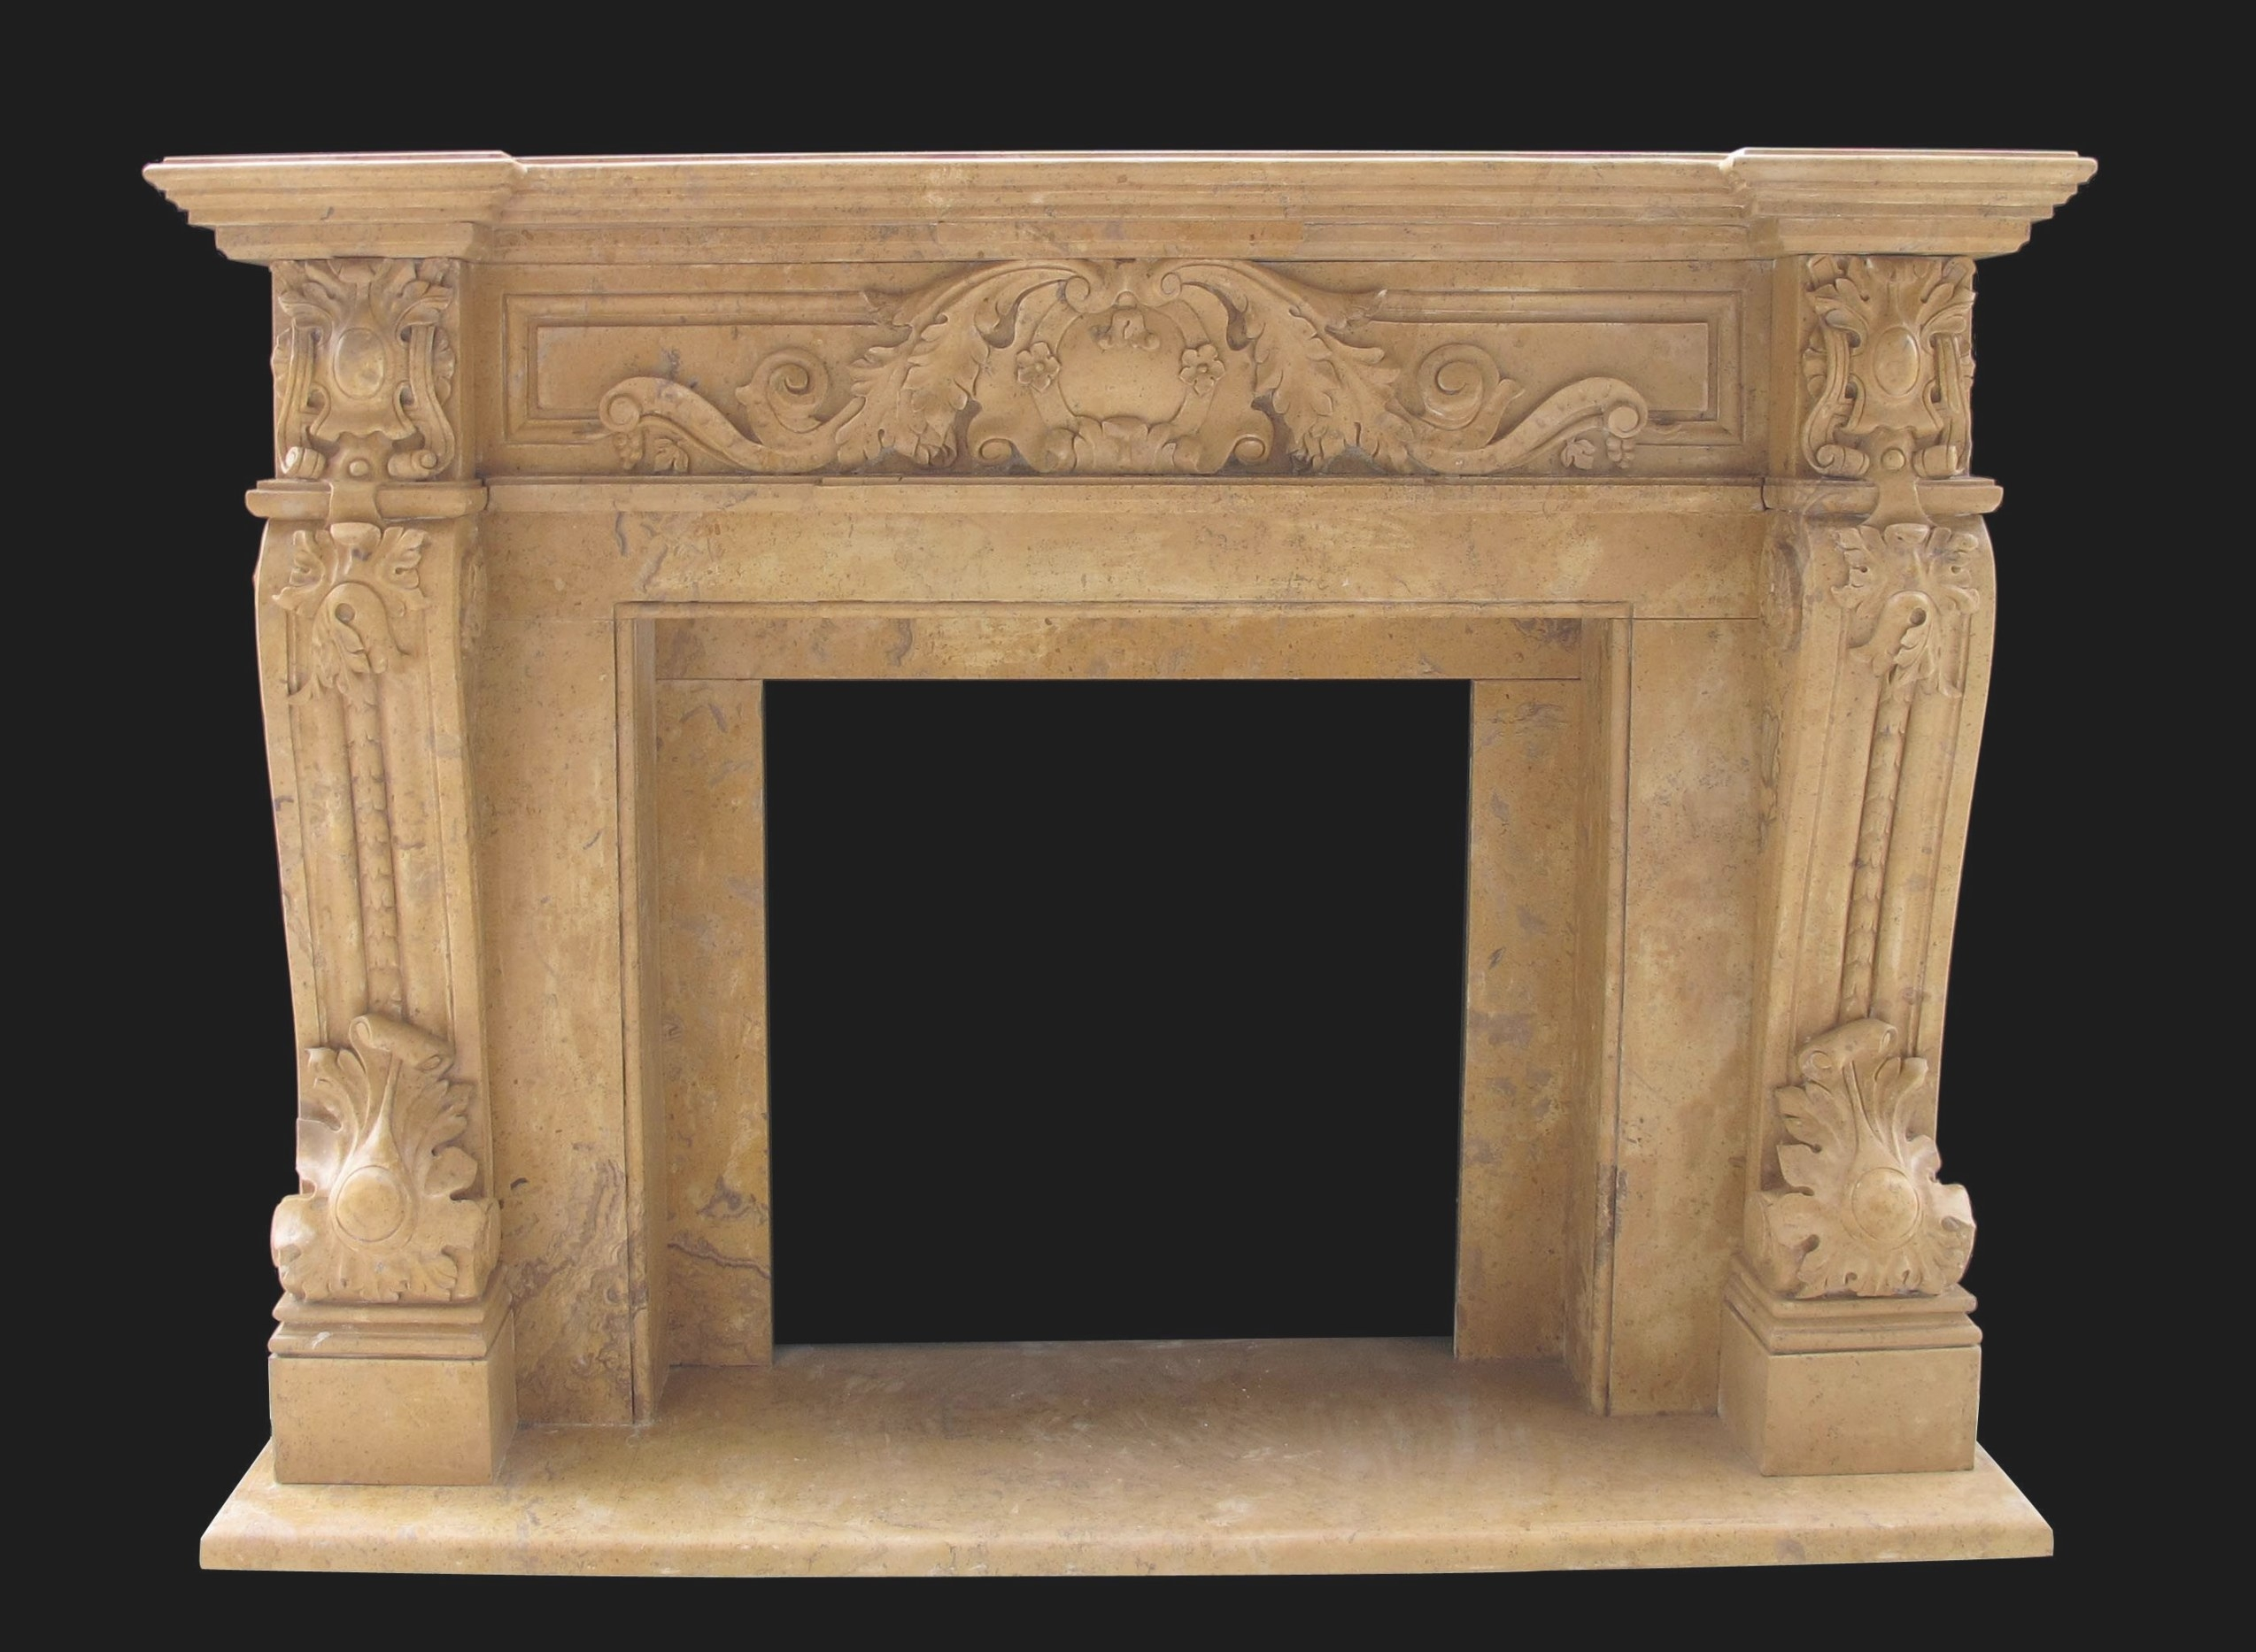 Verona Antique Fireplace Mantel Surrounds   French for Fireplace Mantels For Sale